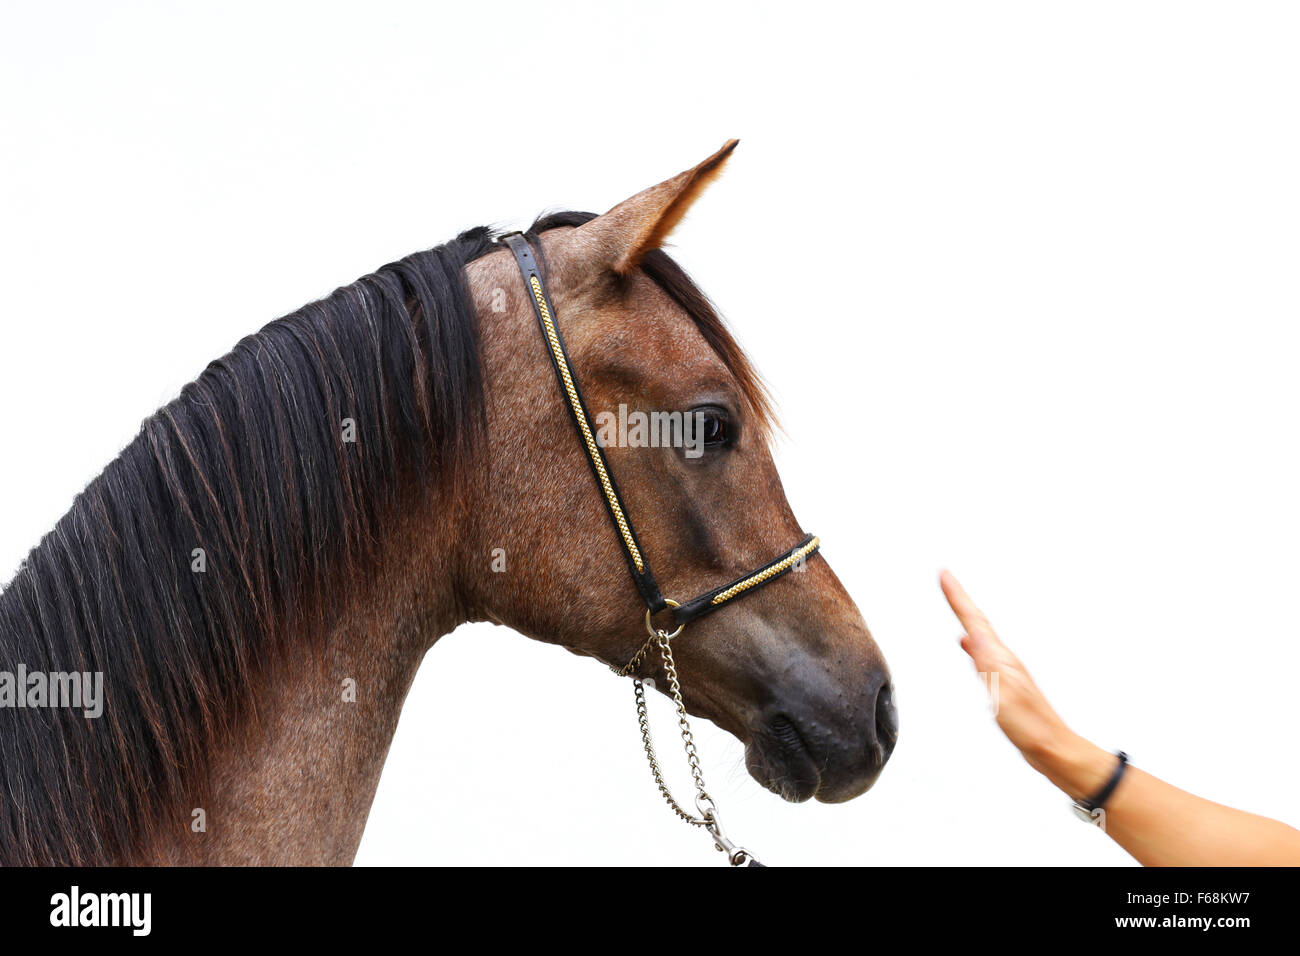 Horse Head Side View High Resolution Stock Photography And Images Alamy